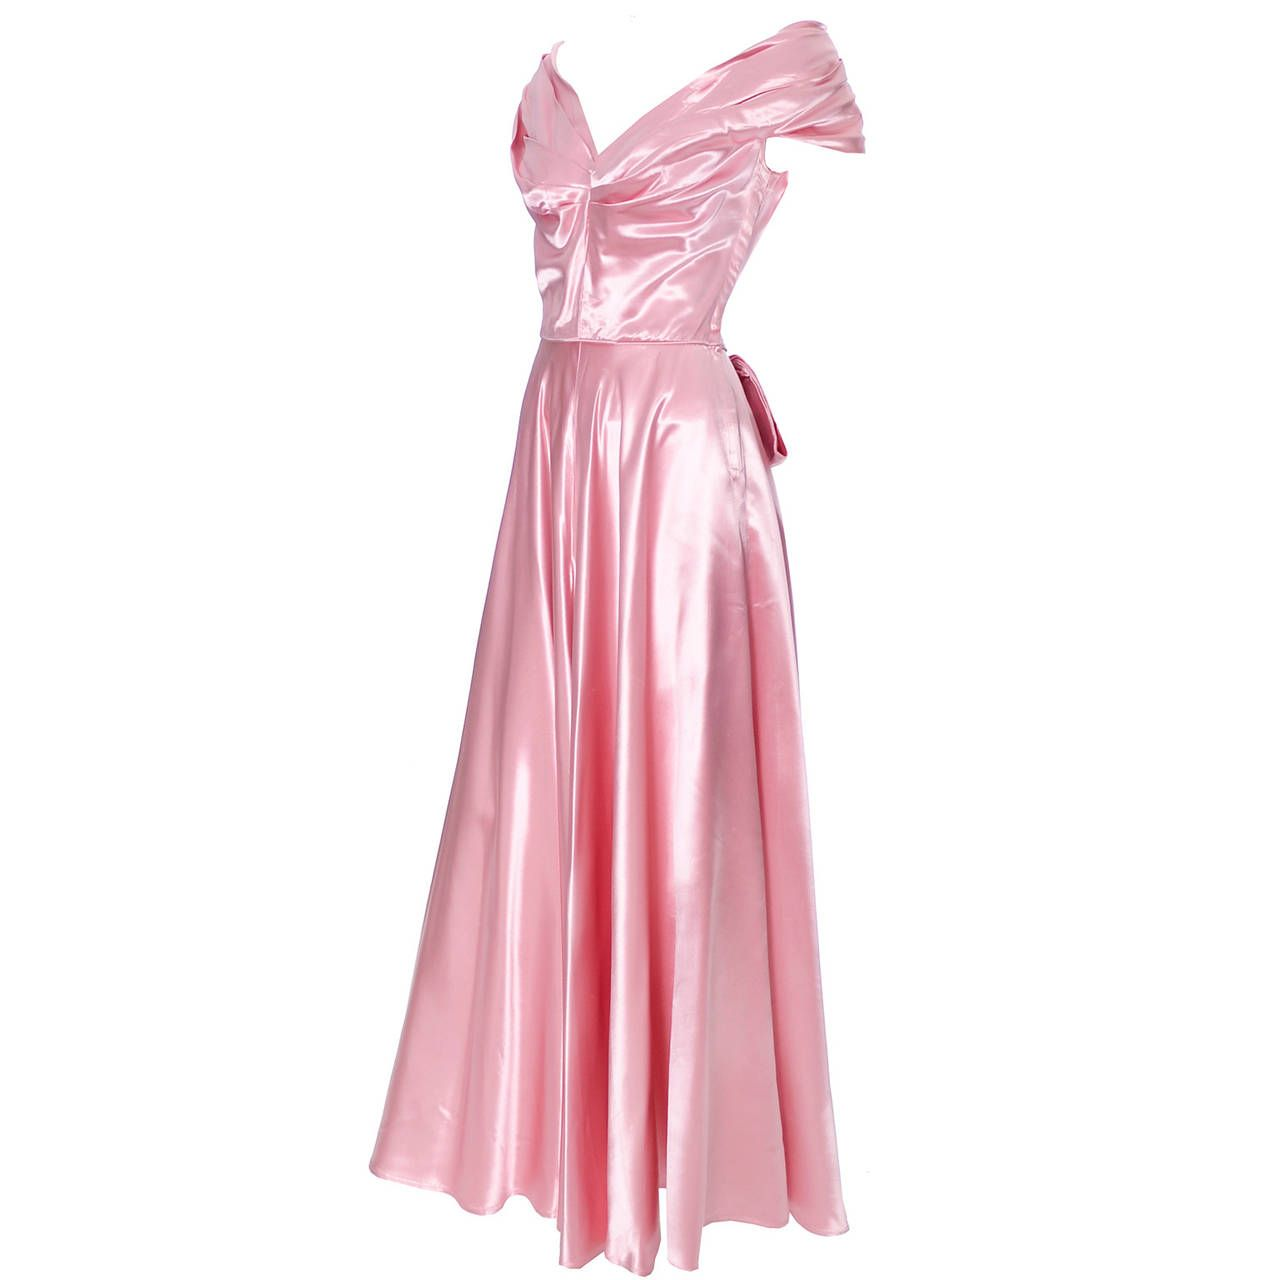 Emma Domb Formal Vintage Dress 1940s Slipper Satin Pink Evening Gown ...